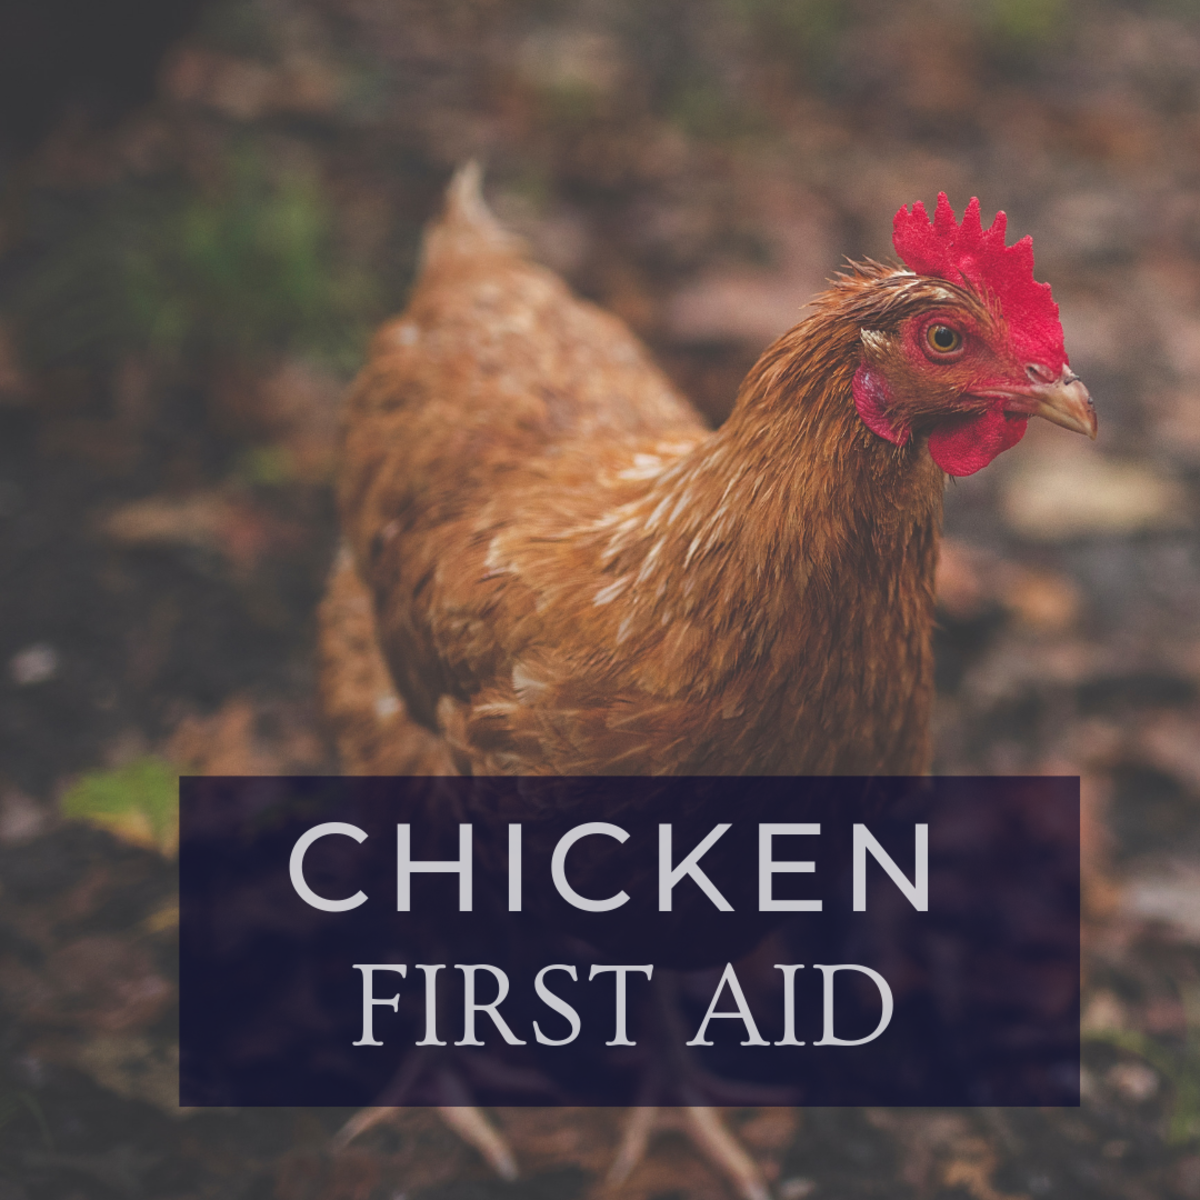 Chicken First Aid